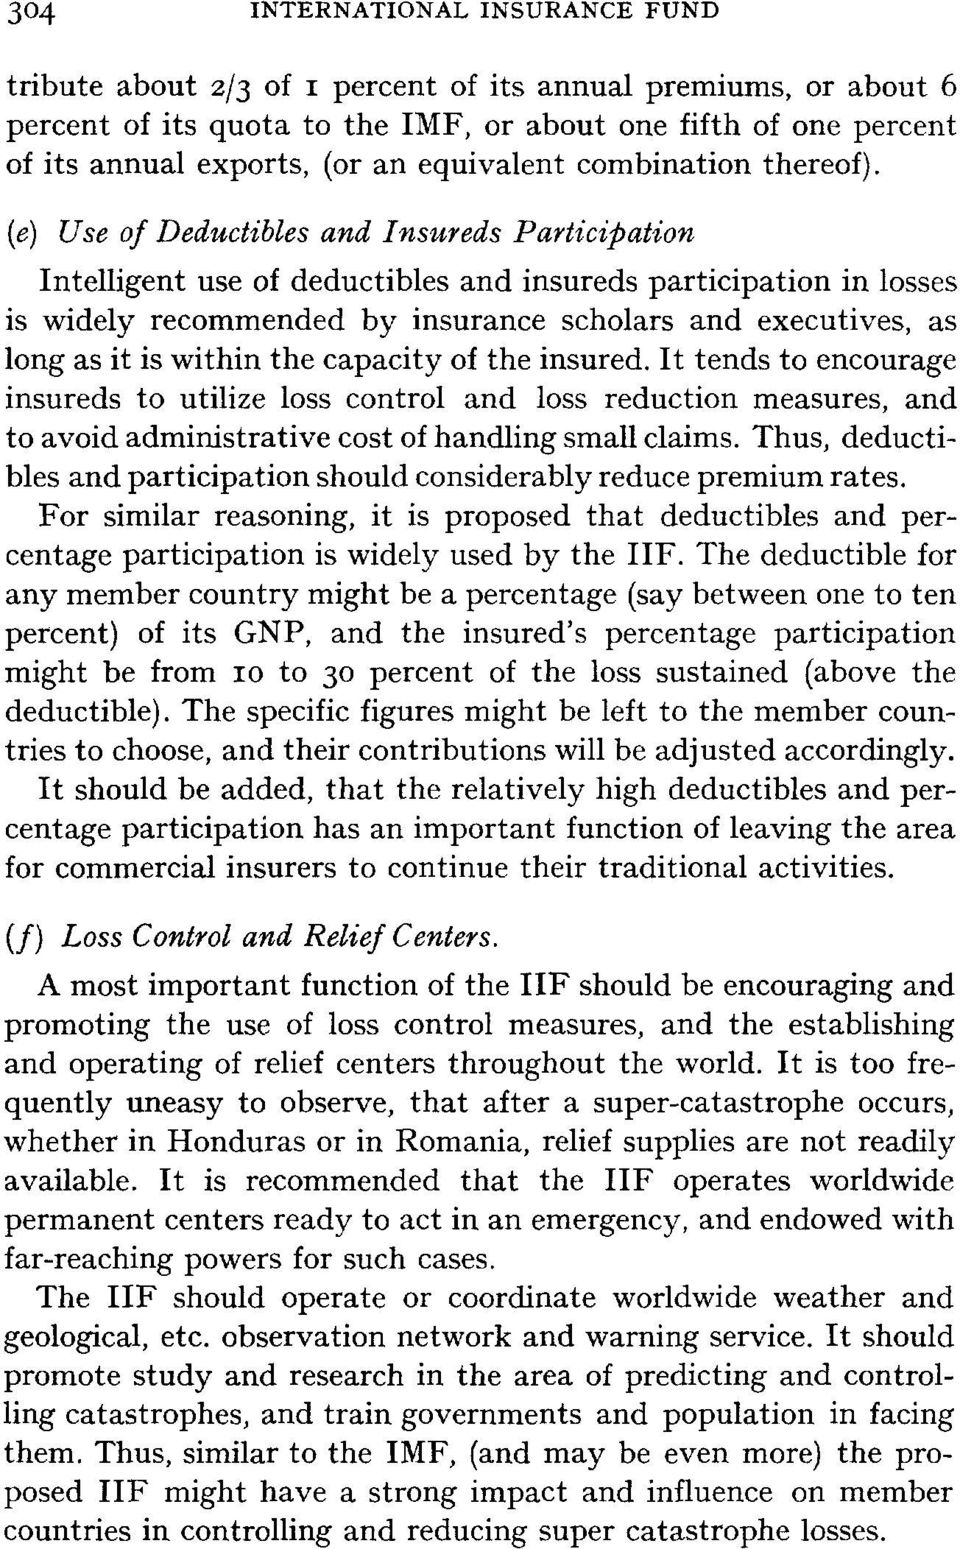 (e) Use of Deductibles and Insureds Participation Intelligent use of deductibles and insureds participation in losses is widely recommended by insurance scholars and executives, as long as it is